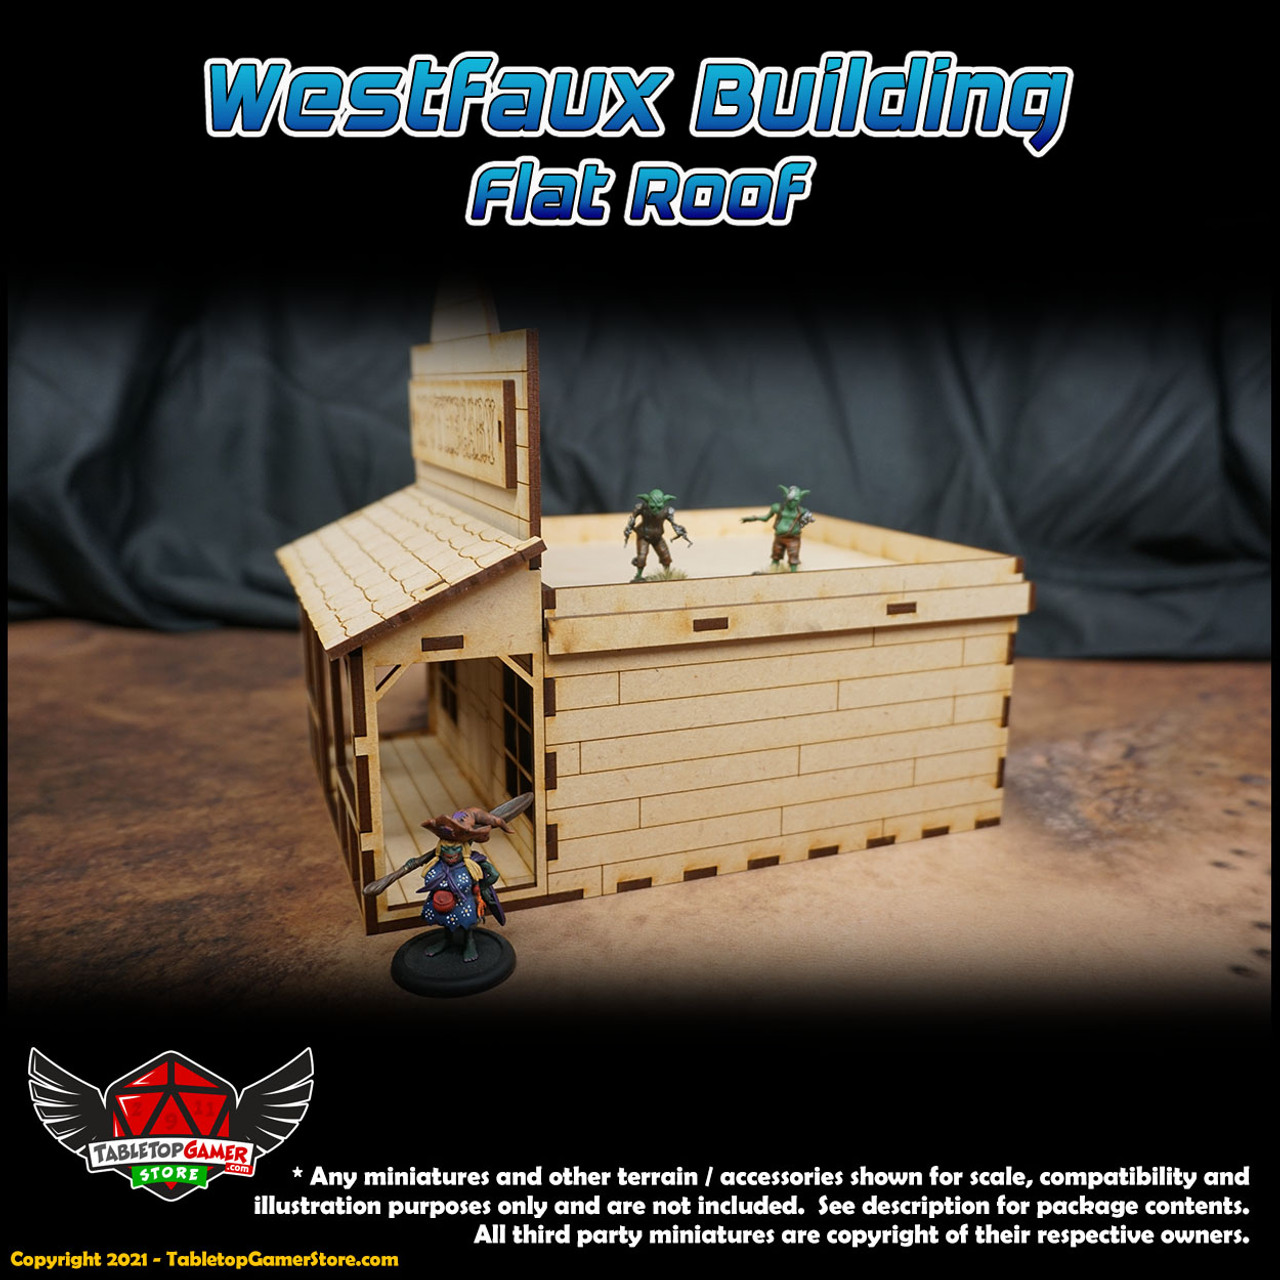 Westfaux Old-West Themed Building